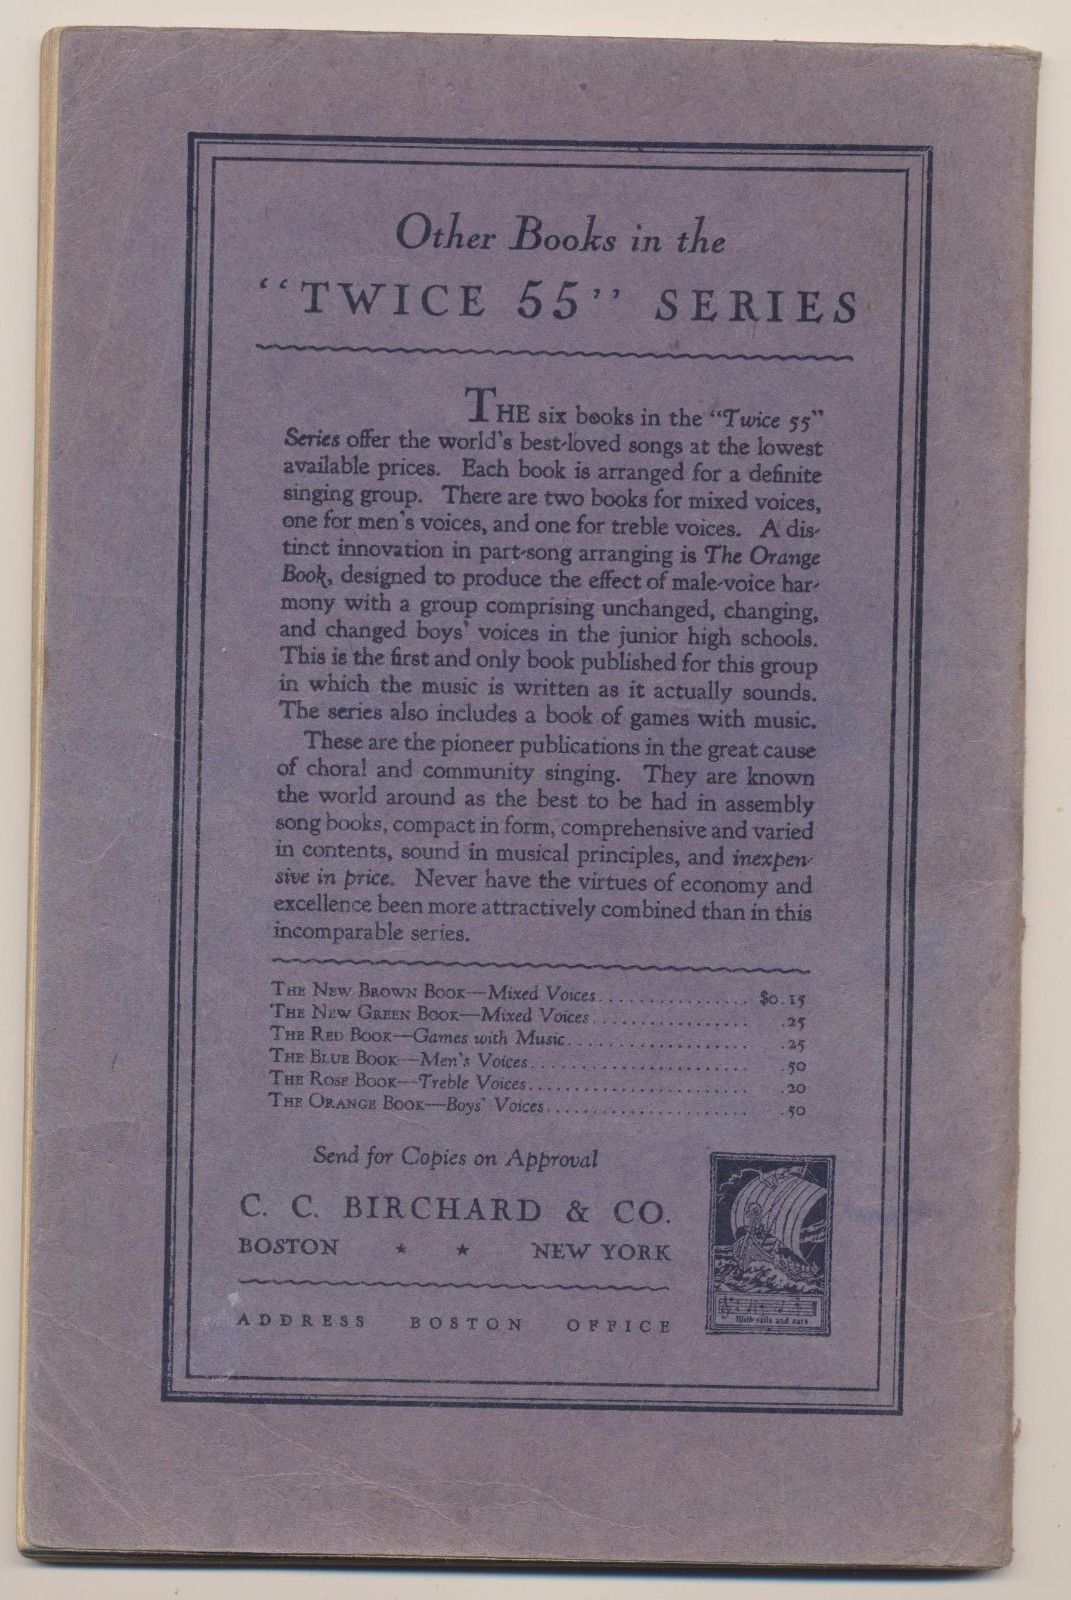 Vintage 1926 Twice 55 Community Songs For Male Voice Blue Book C.C Birchard & Co